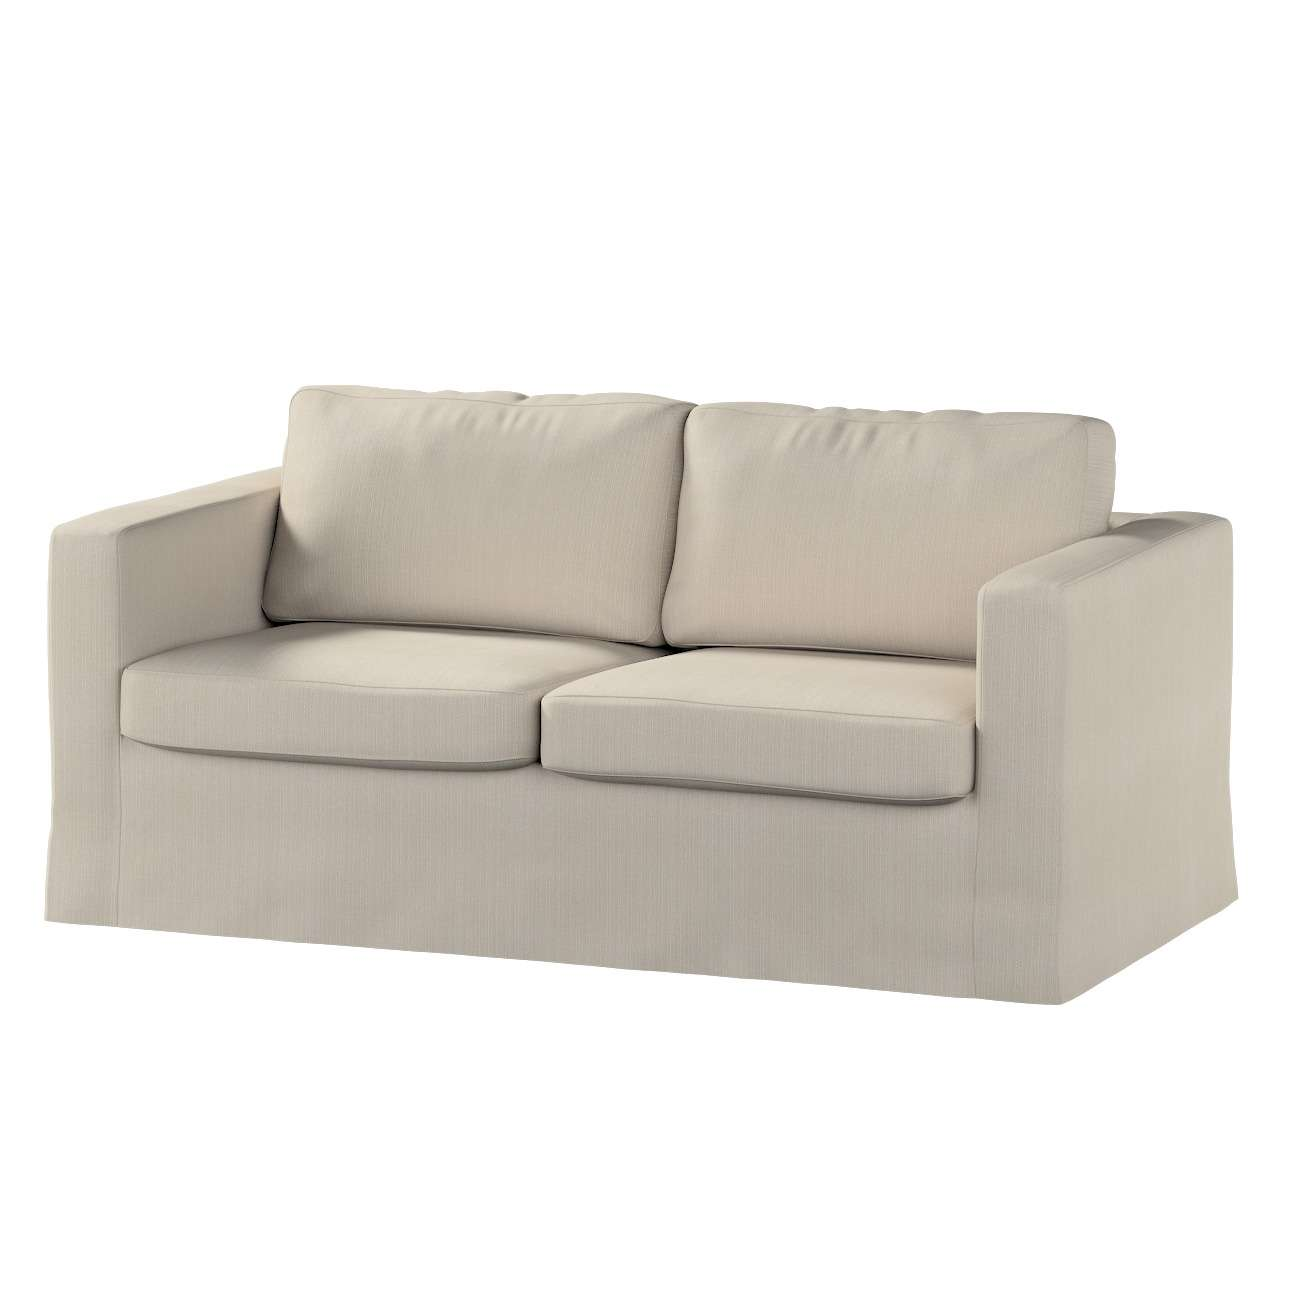 Floor length Karlstad 2-seater sofa cover in collection Granada, fabric: 104-89